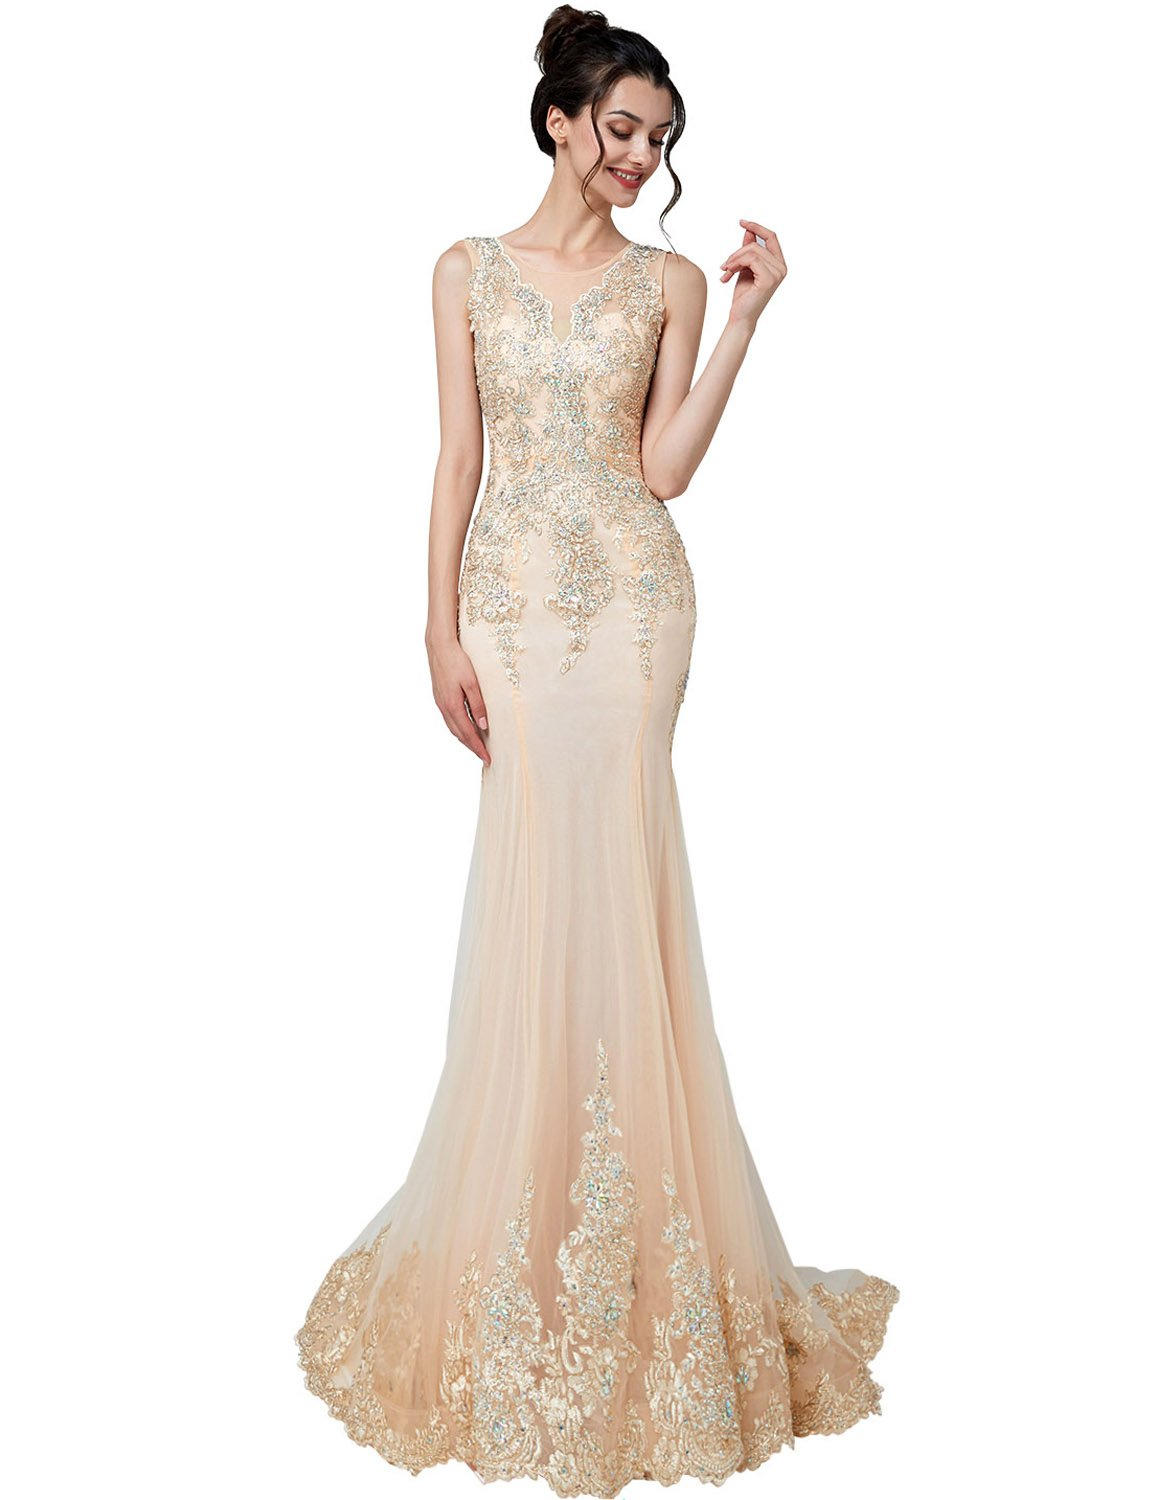 Belle House Evening Dresses Long for Women Formal Elegant Lace Prom Dresses  Plus Size New Mermaid Gowns Champagne